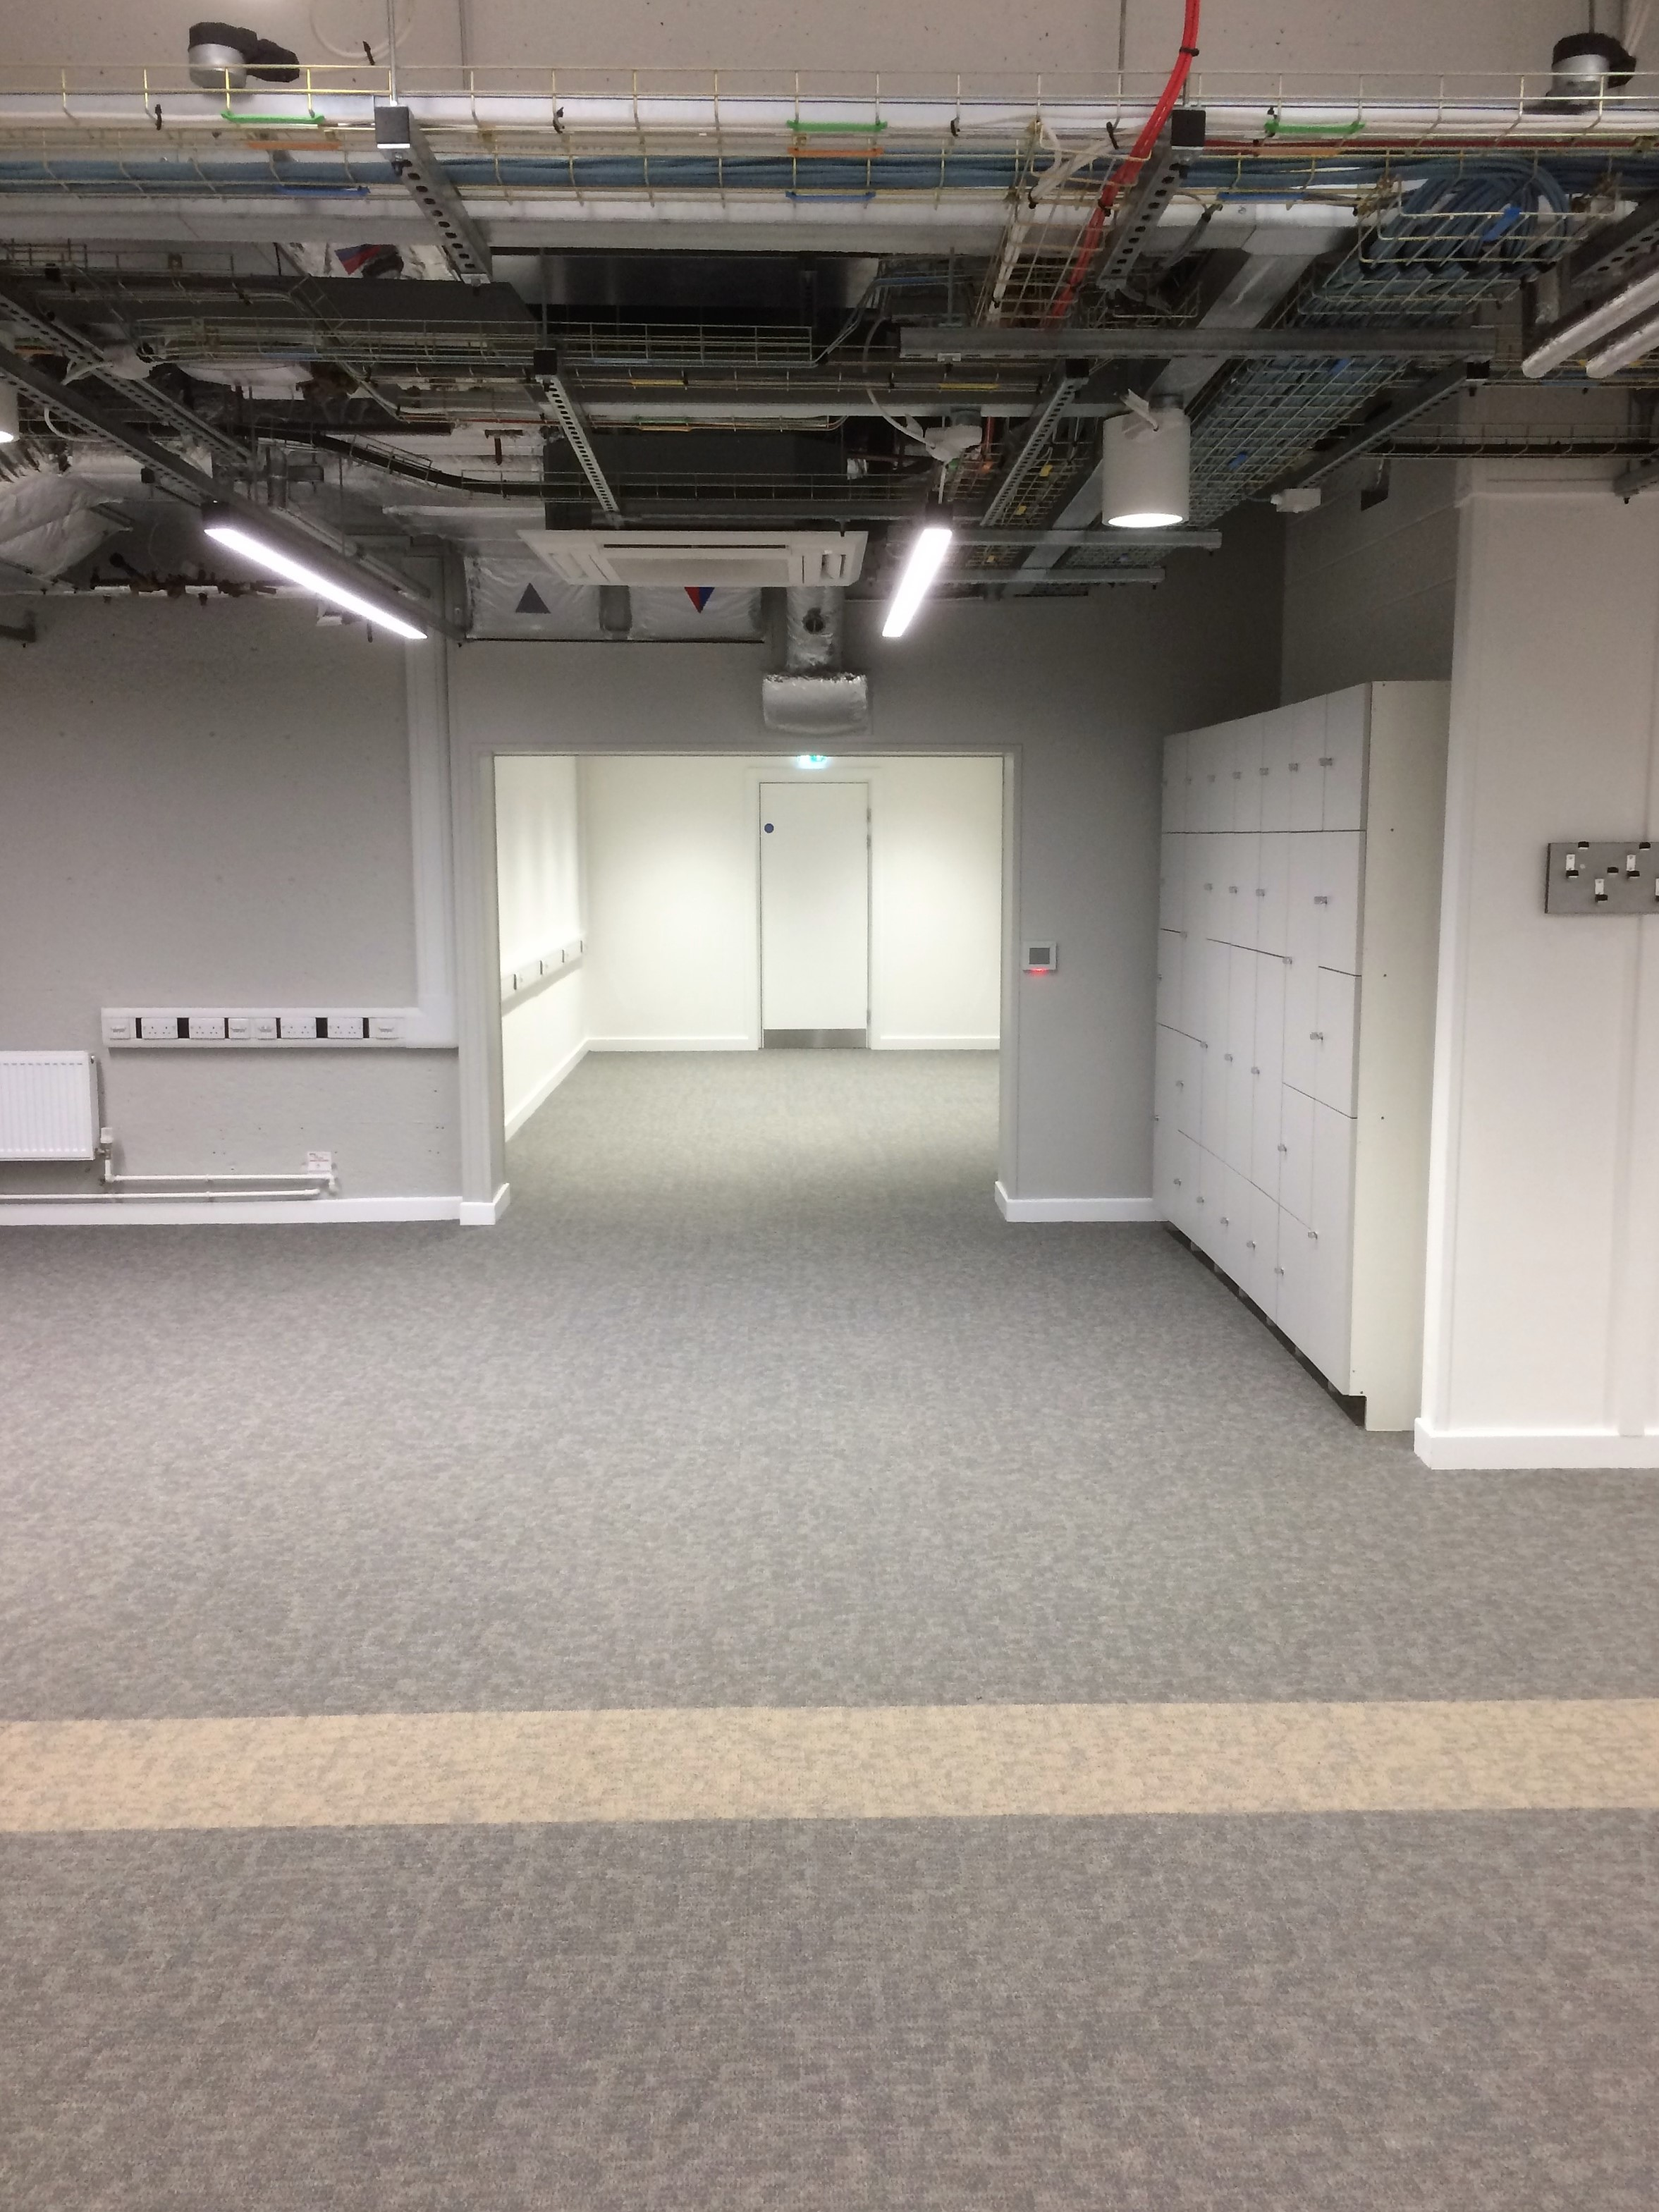 Roger Stevens, Level 5 Laboratory Refurbishment